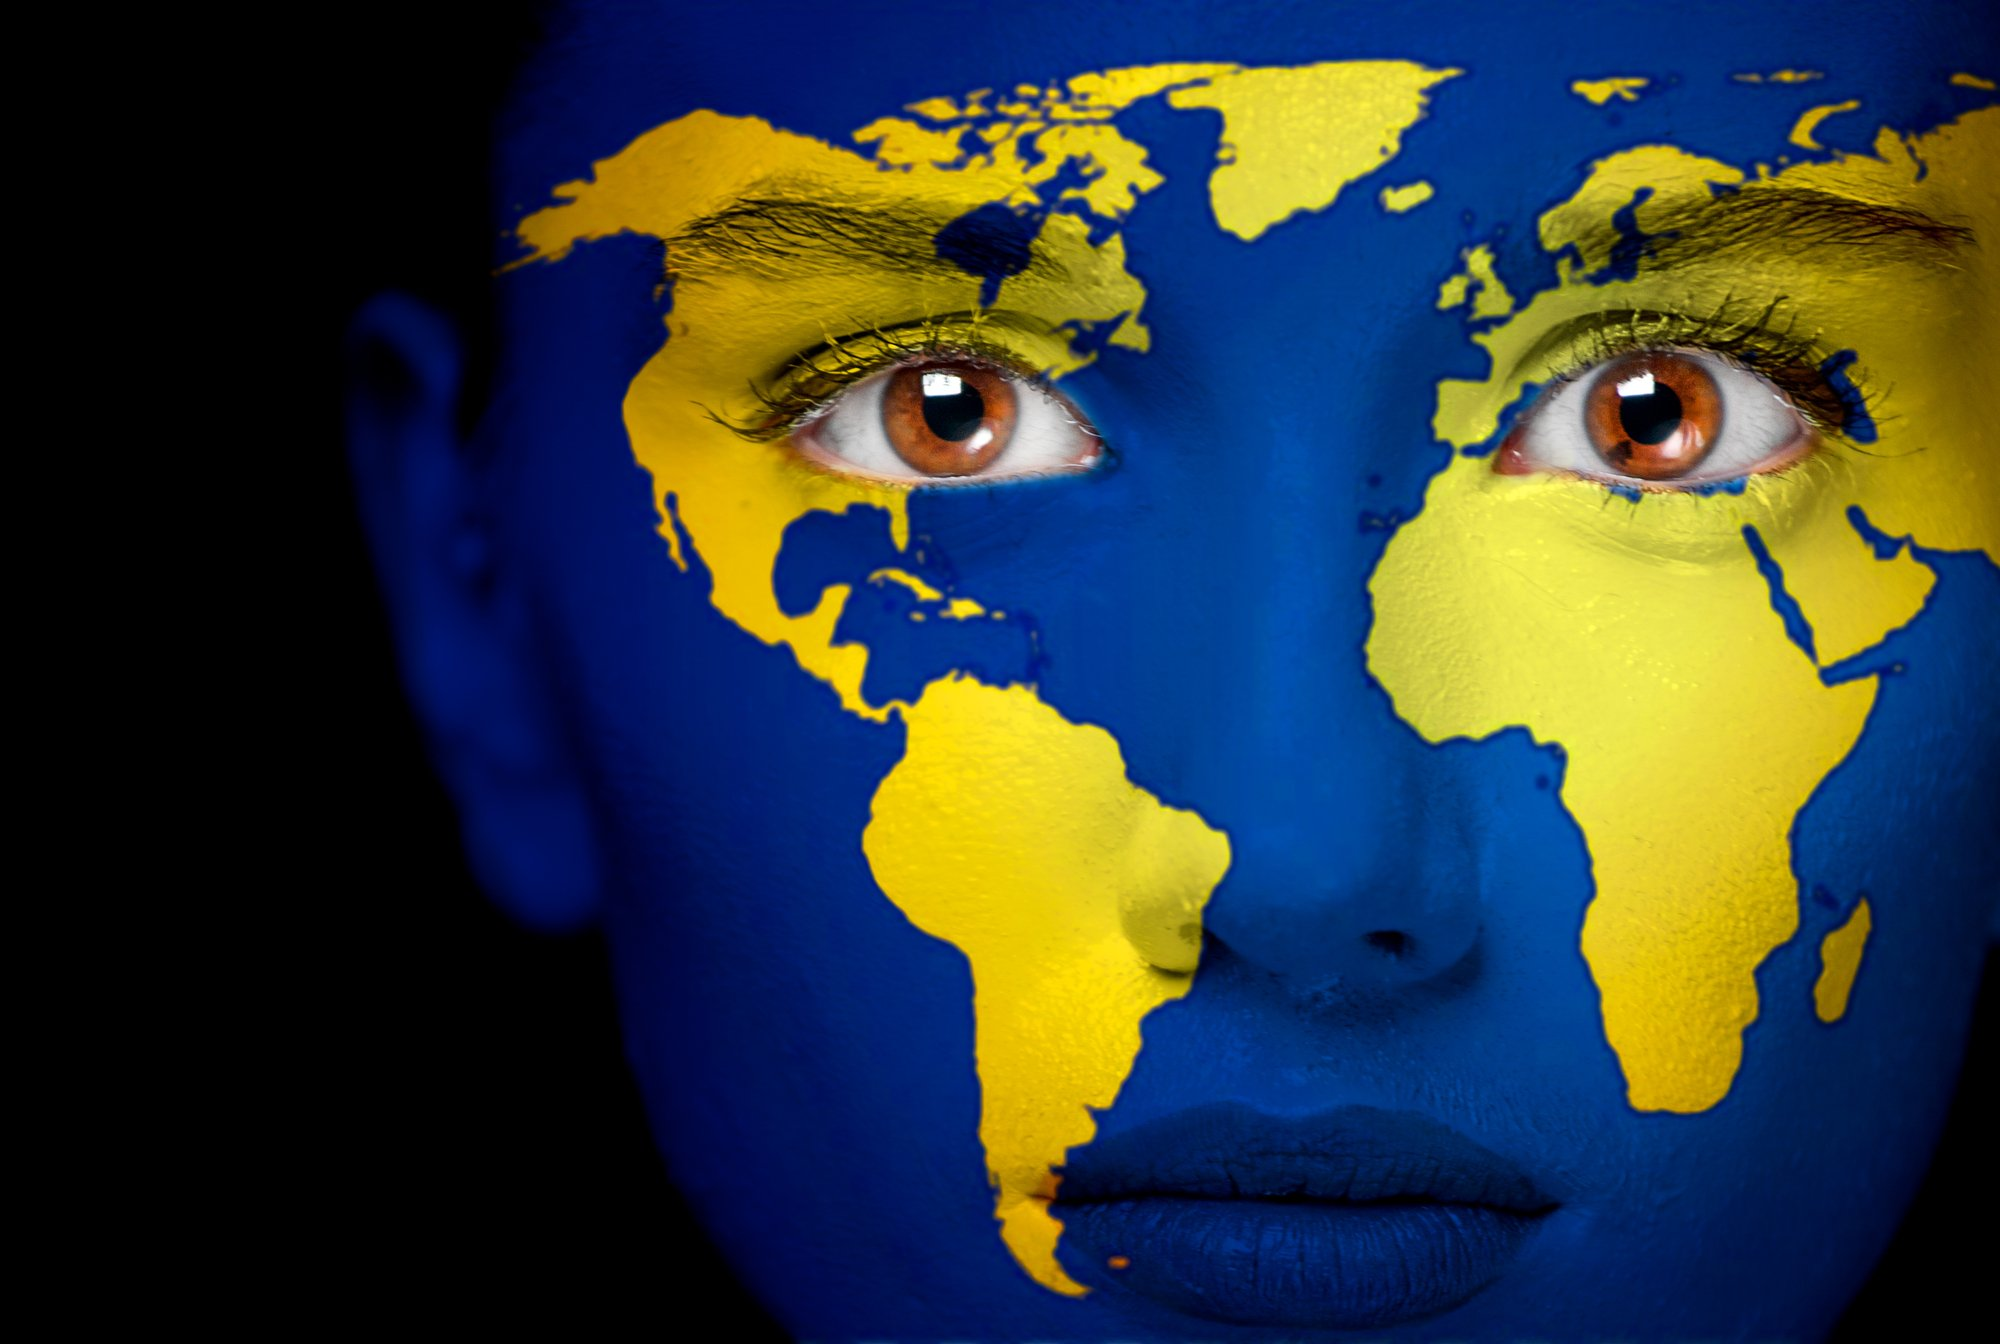 Portrait of a woman with the map of the world painted on her face.